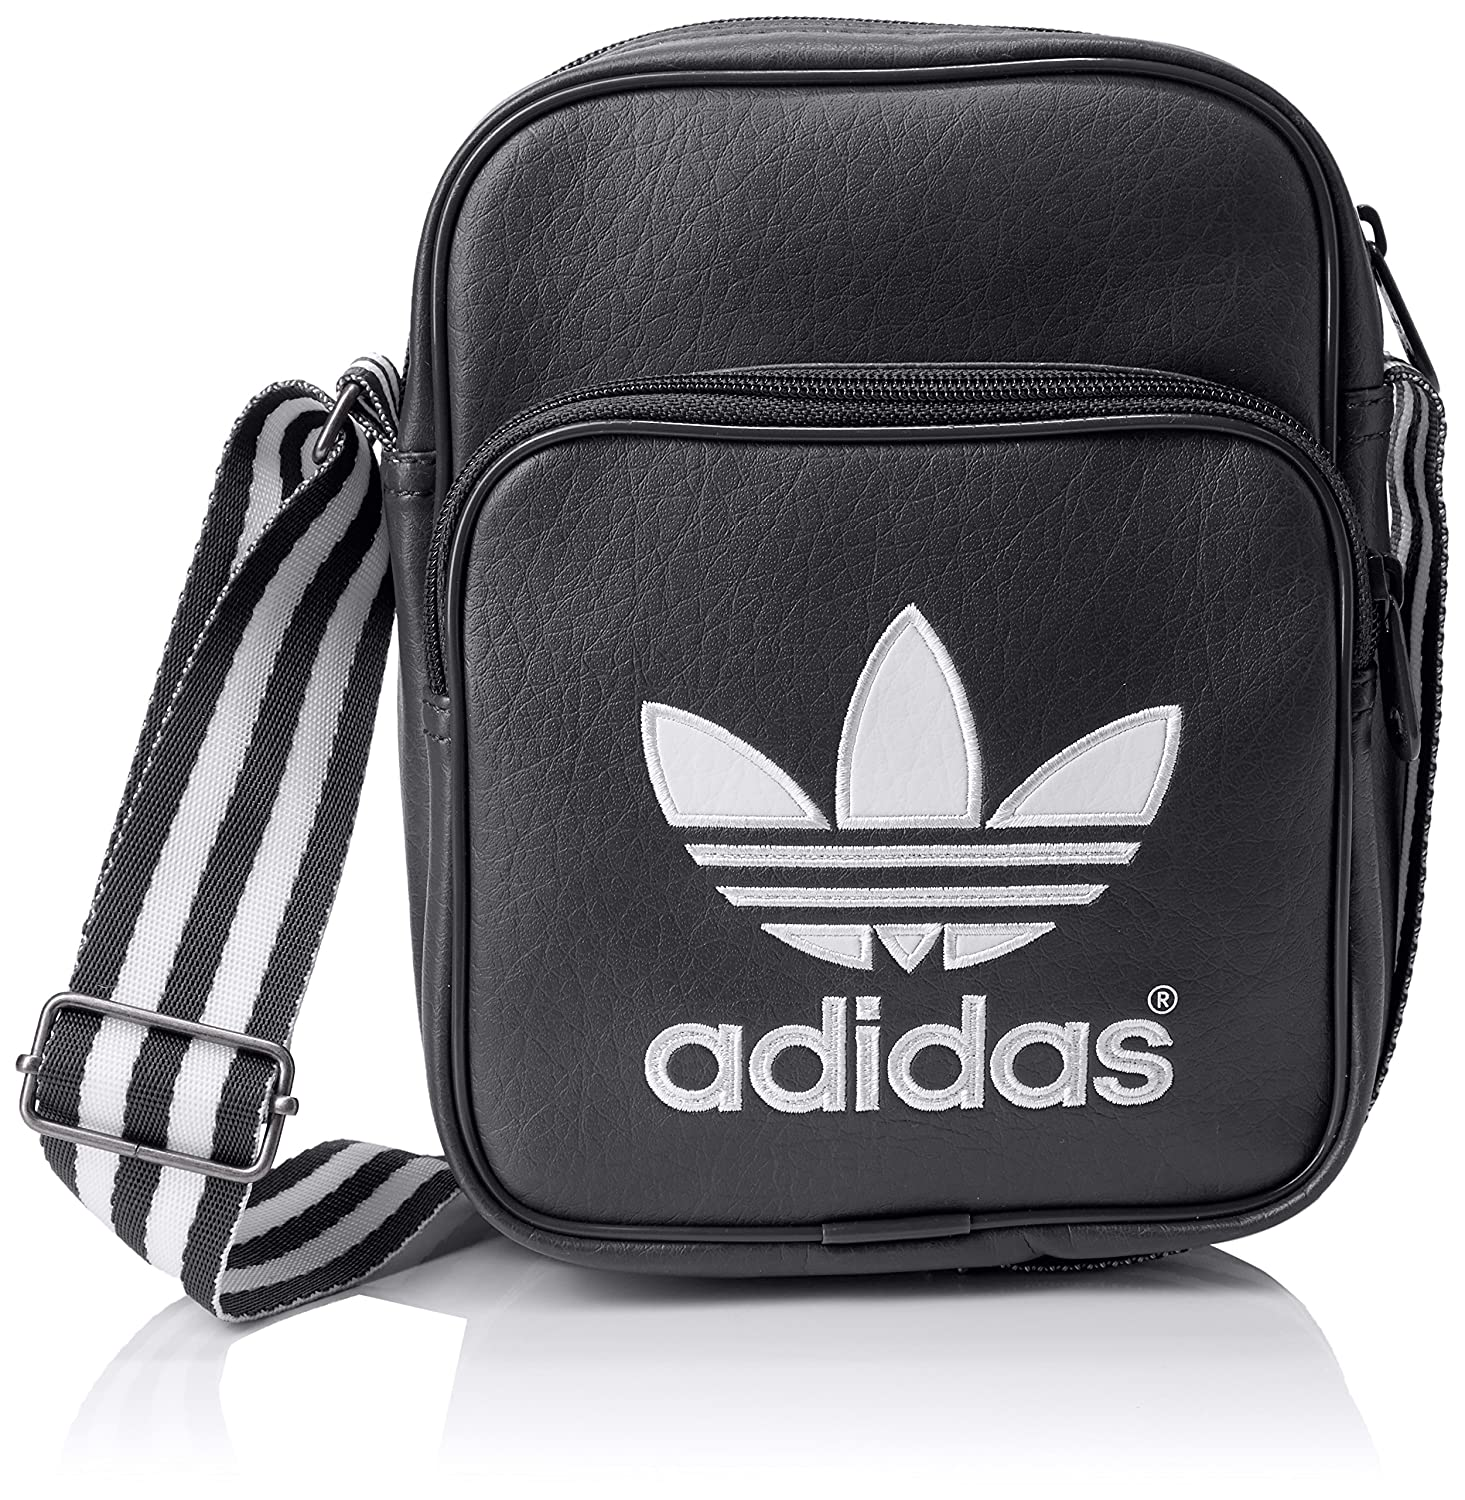 Buy mini messenger bag adidas   OFF33% Discounted c6abd27c26a97